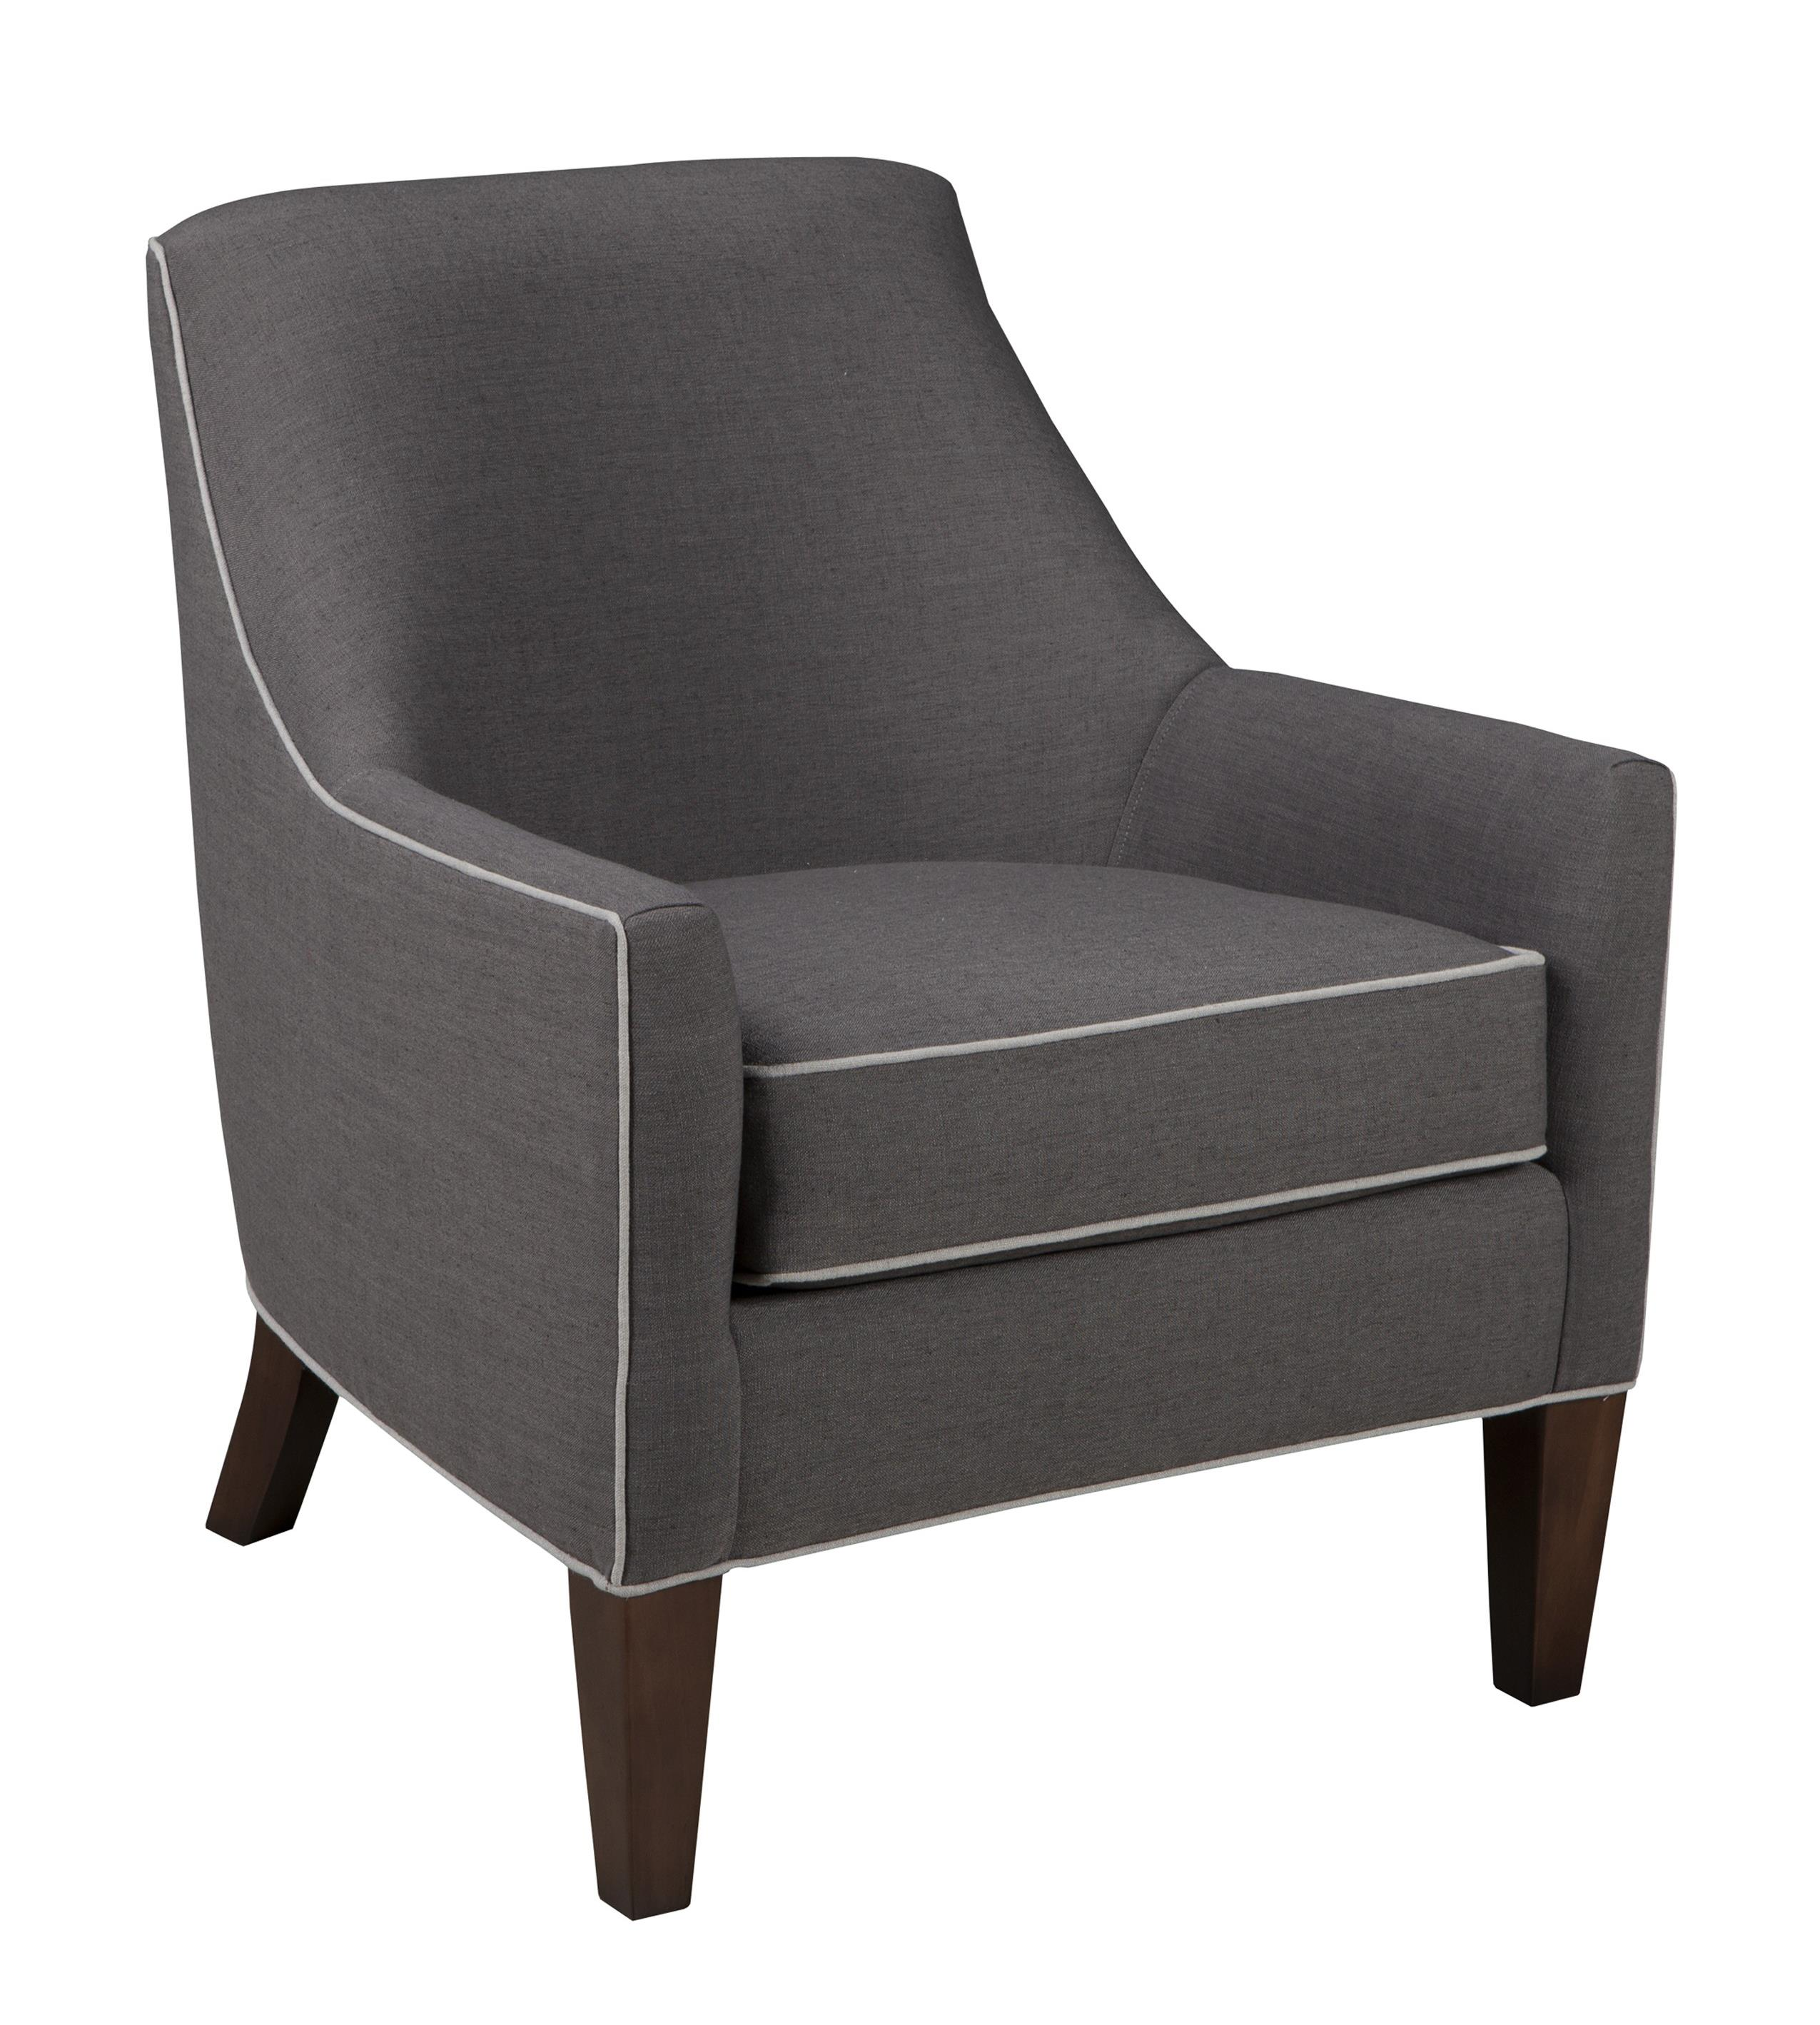 Craftmaster accent chairs contemporary accent chair for Upholstered living room chair